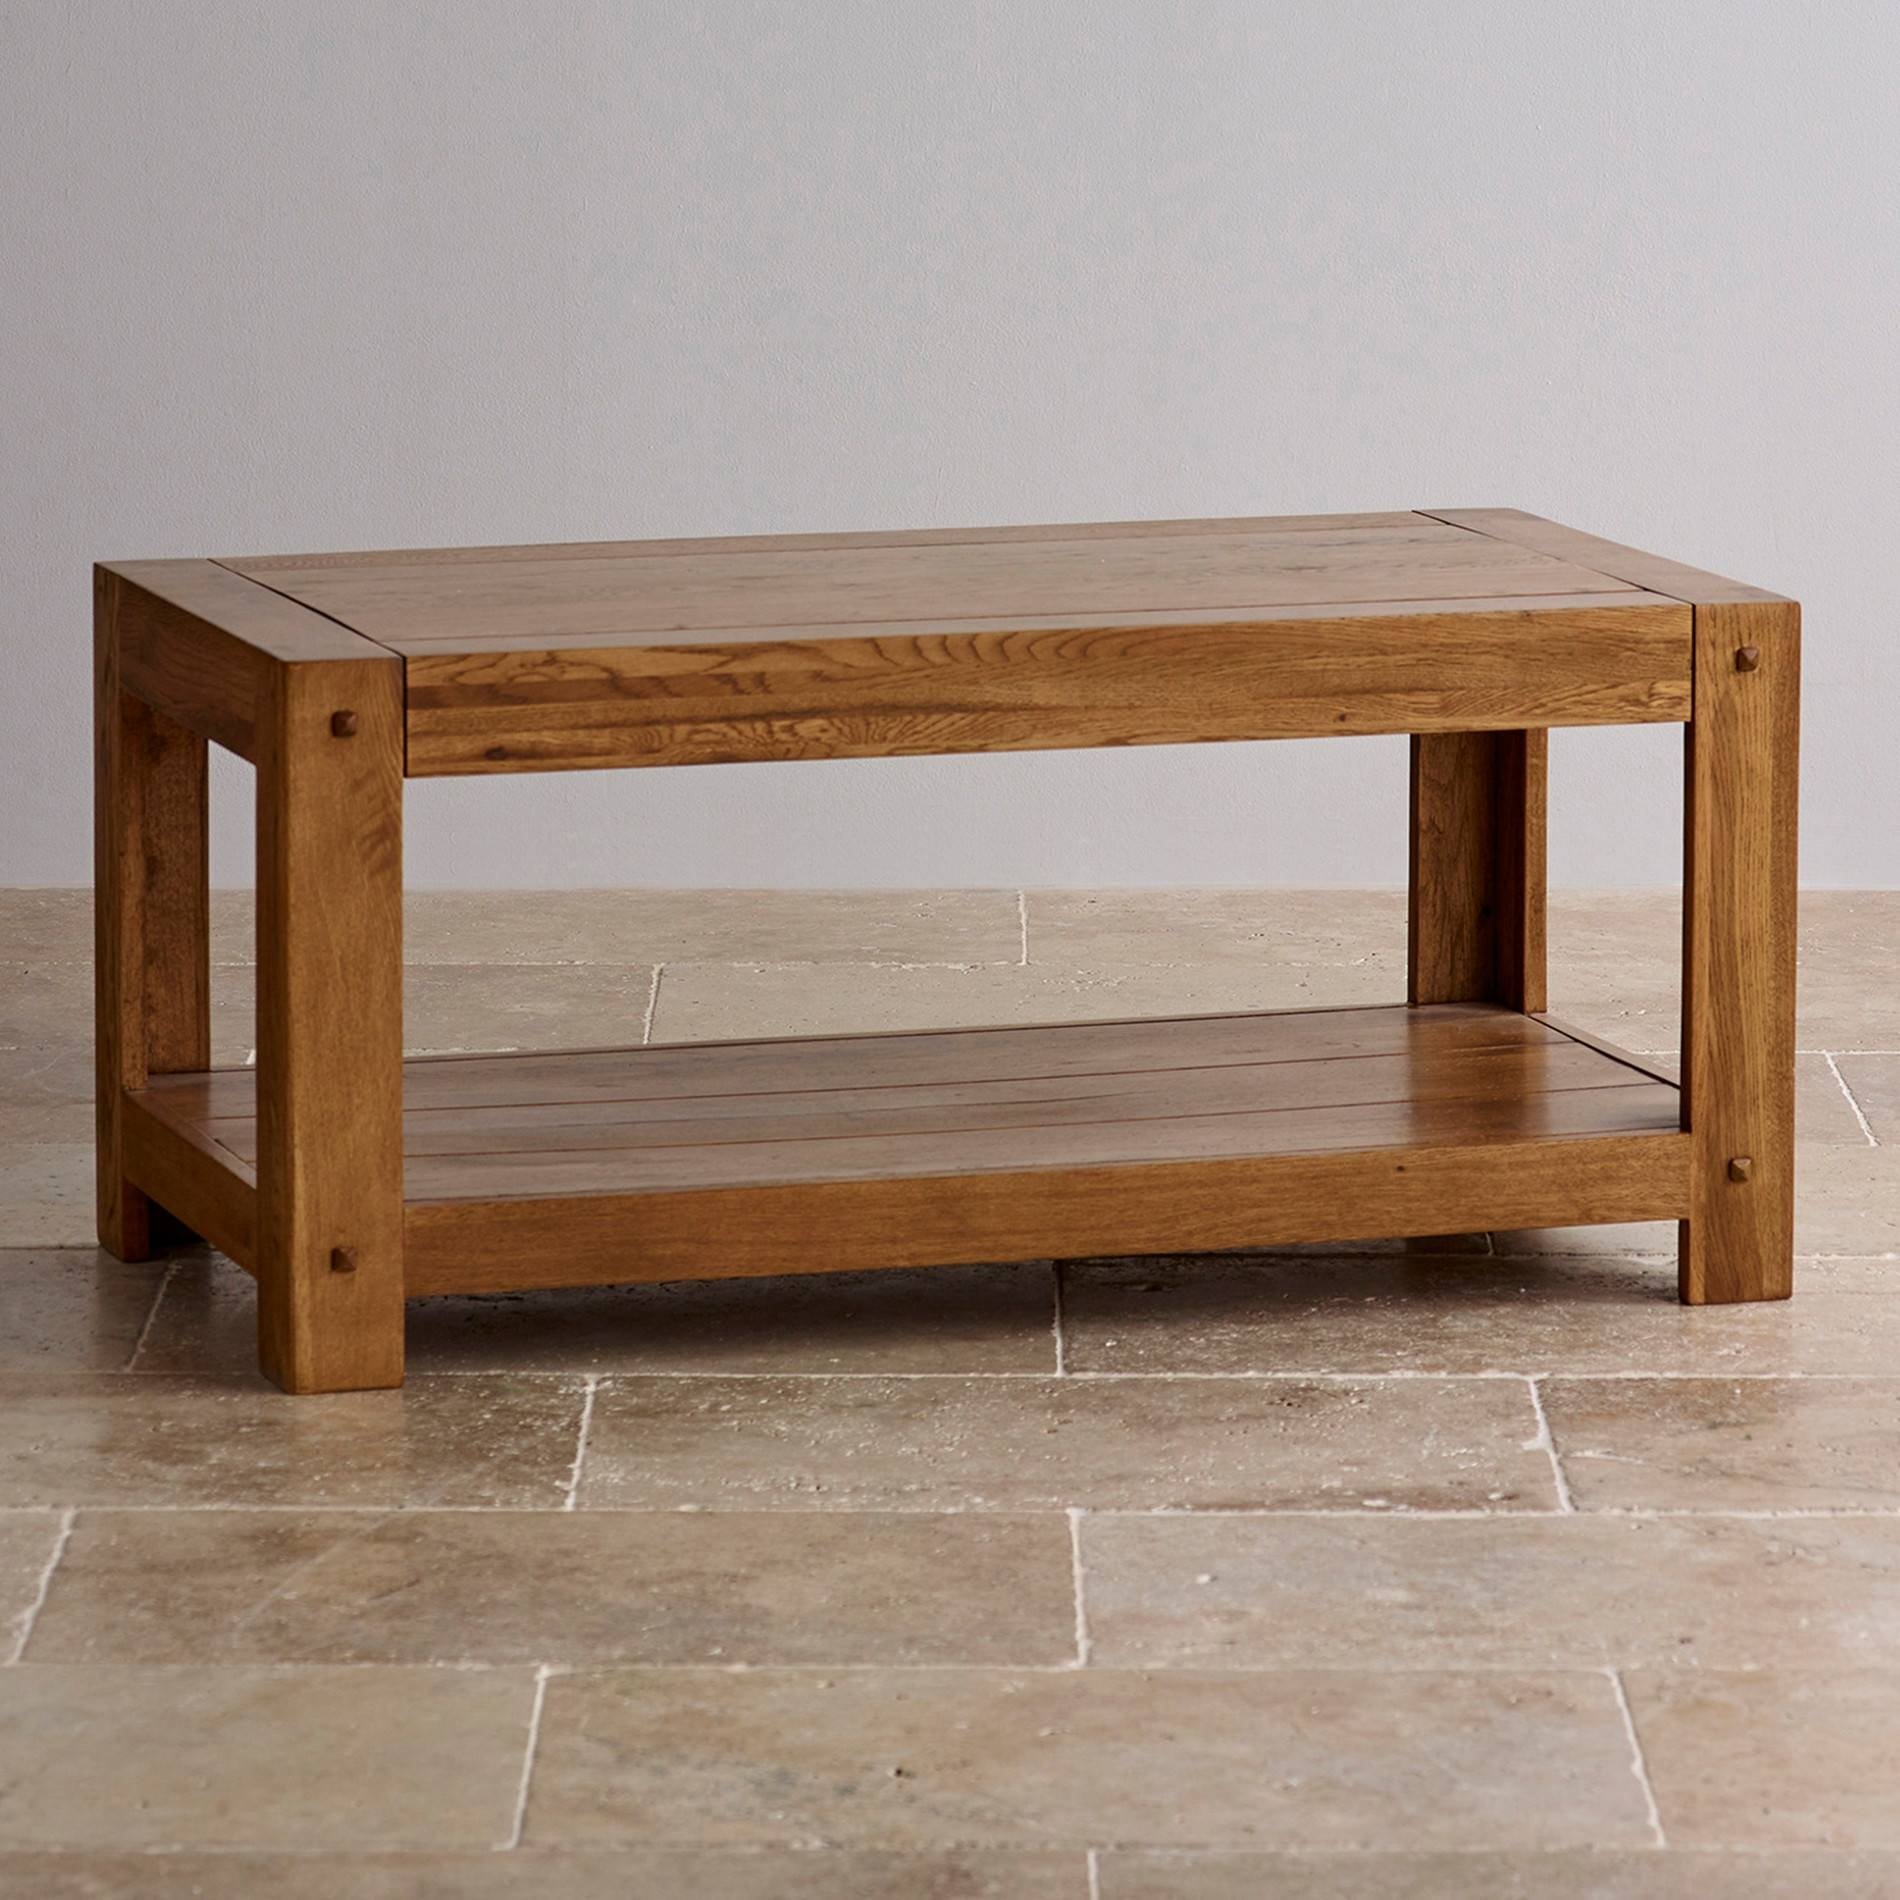 Quercus Coffee Table In Rustic Solid Oak | Oak Furniture Land regarding Oak Furniture Coffee Tables (Image 12 of 15)